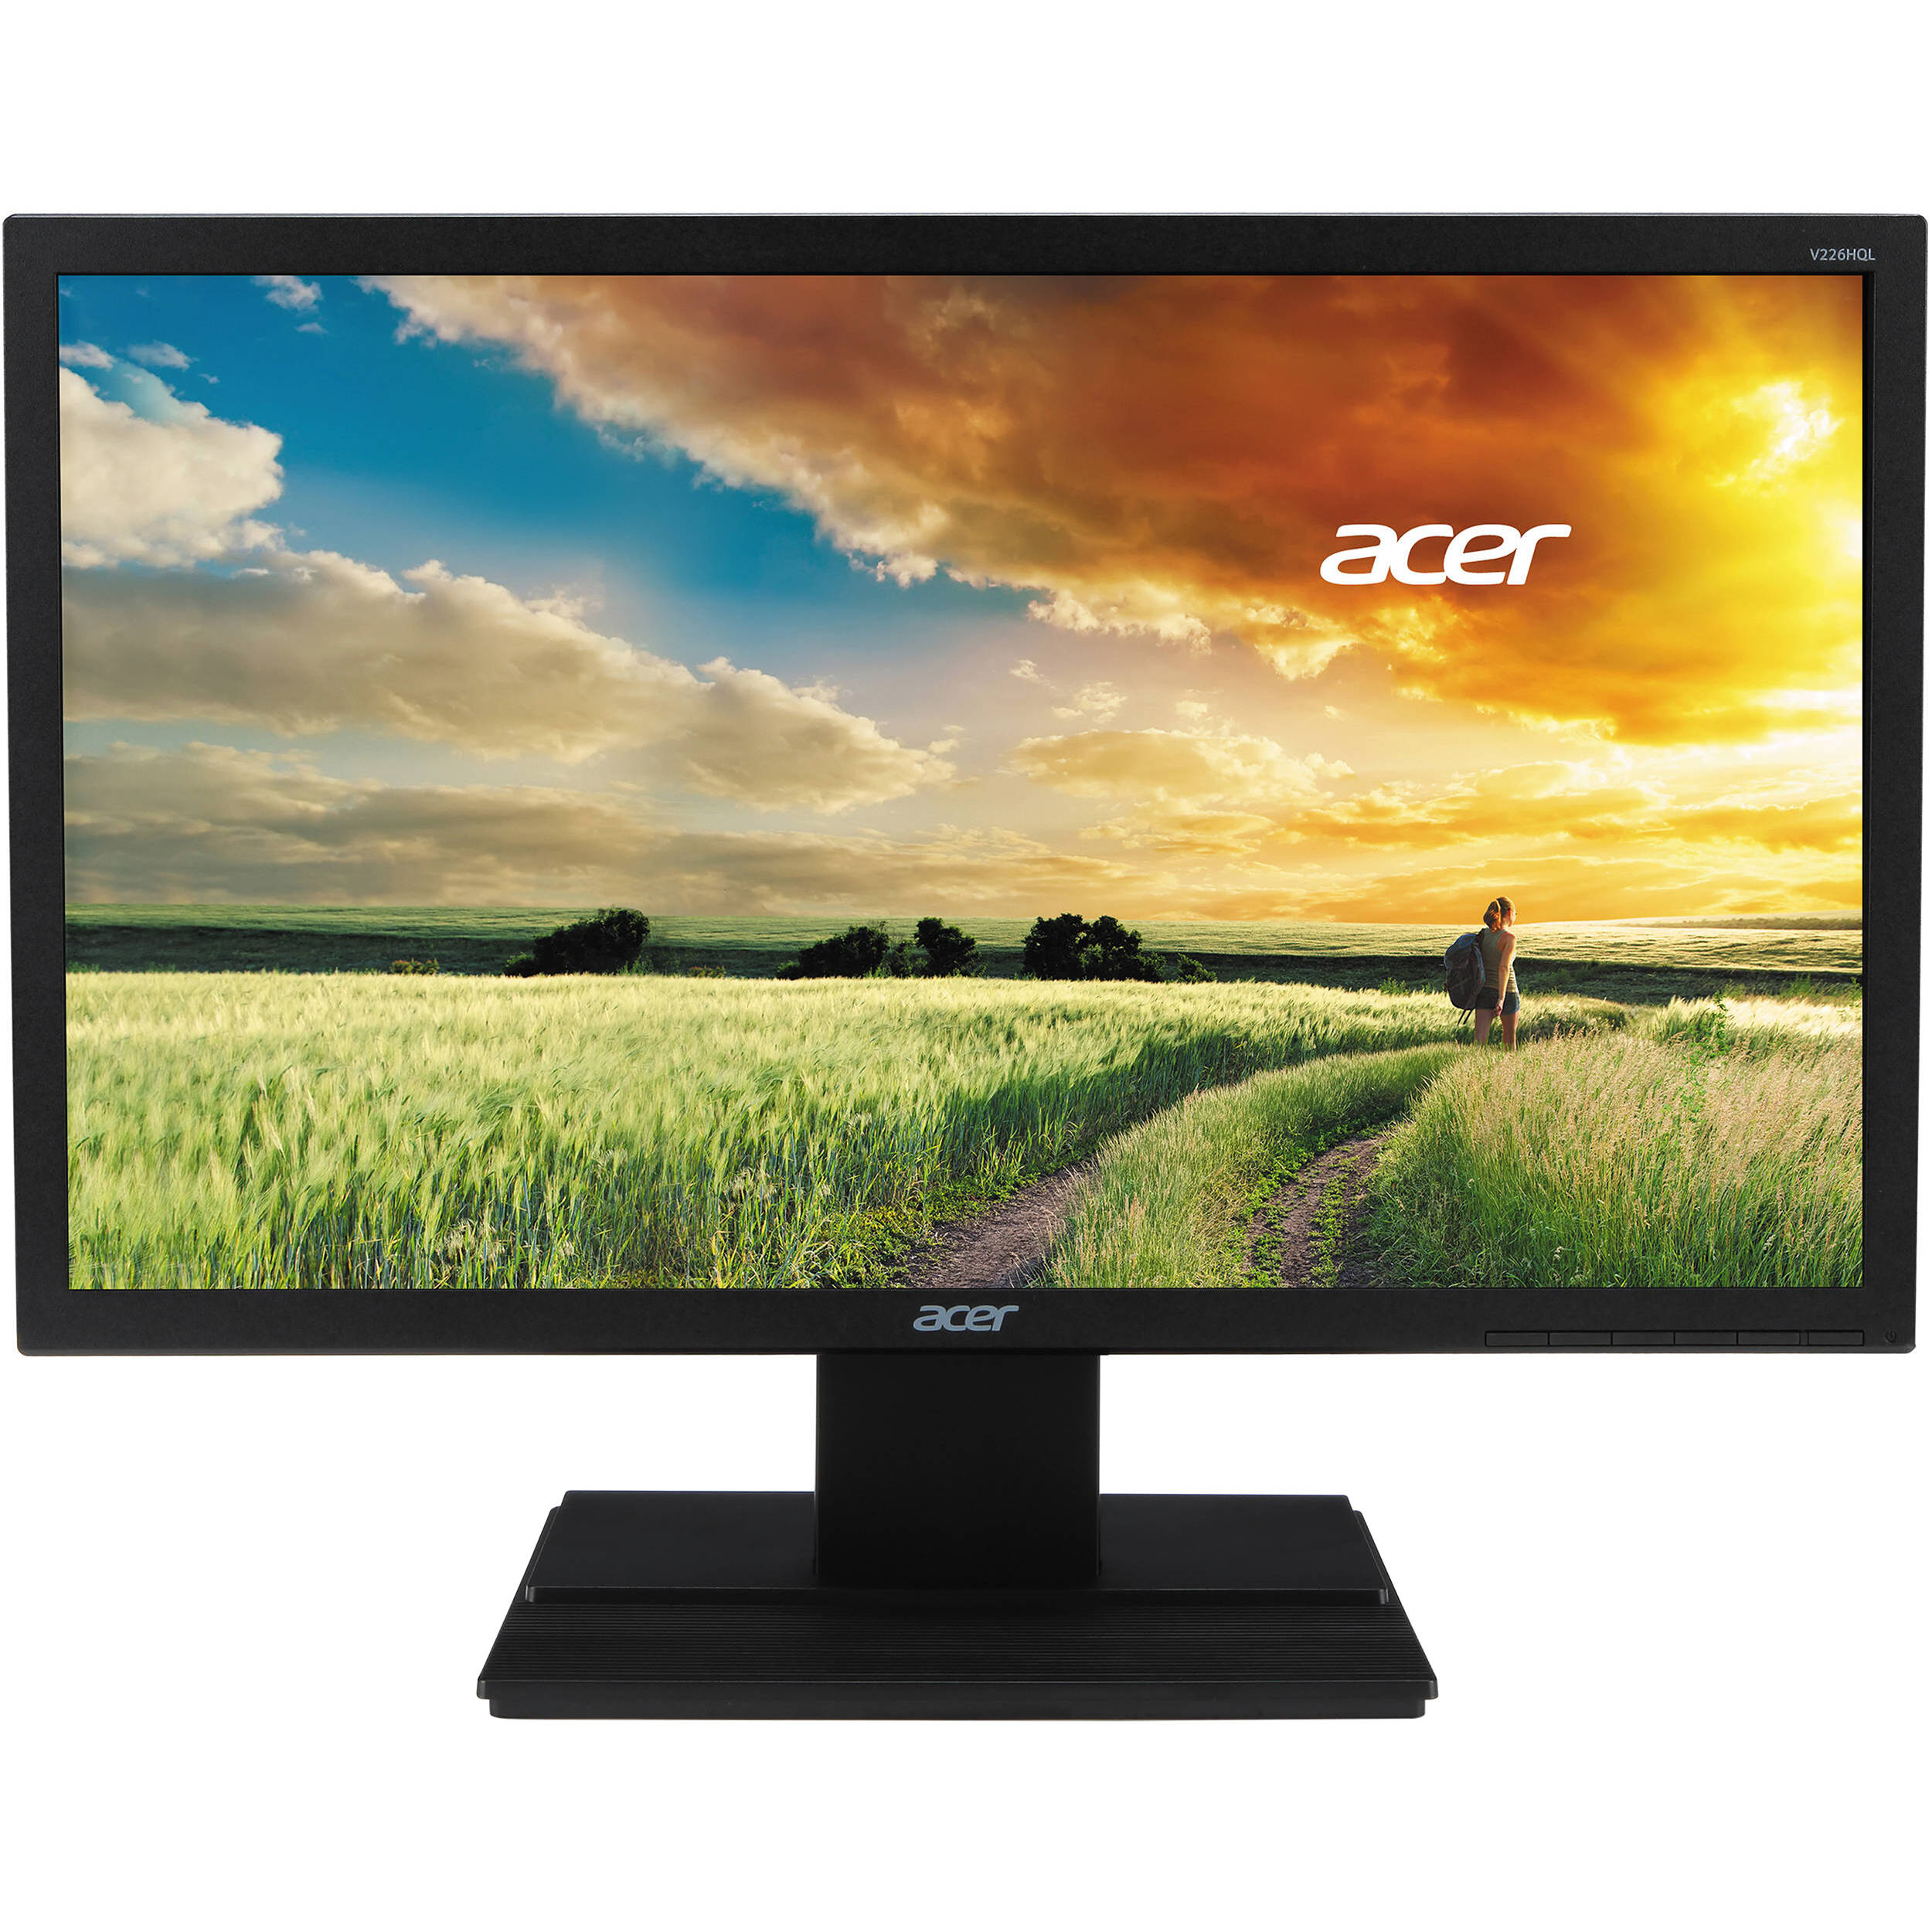 acer 21.5 monitor review